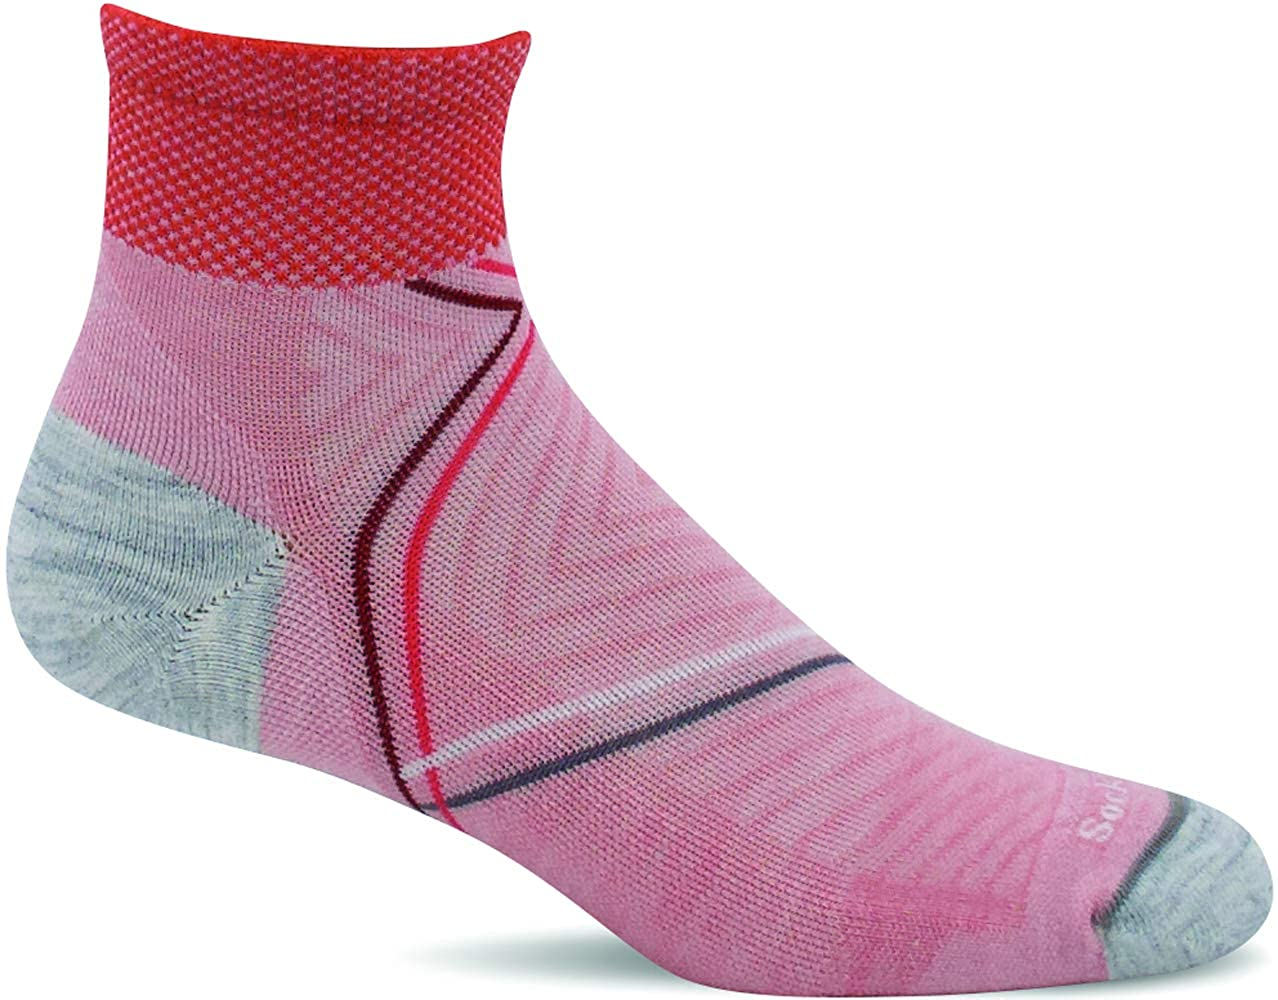 Sockwell Women's Pulse Quarter Firm Compression Sock in Rose from the side